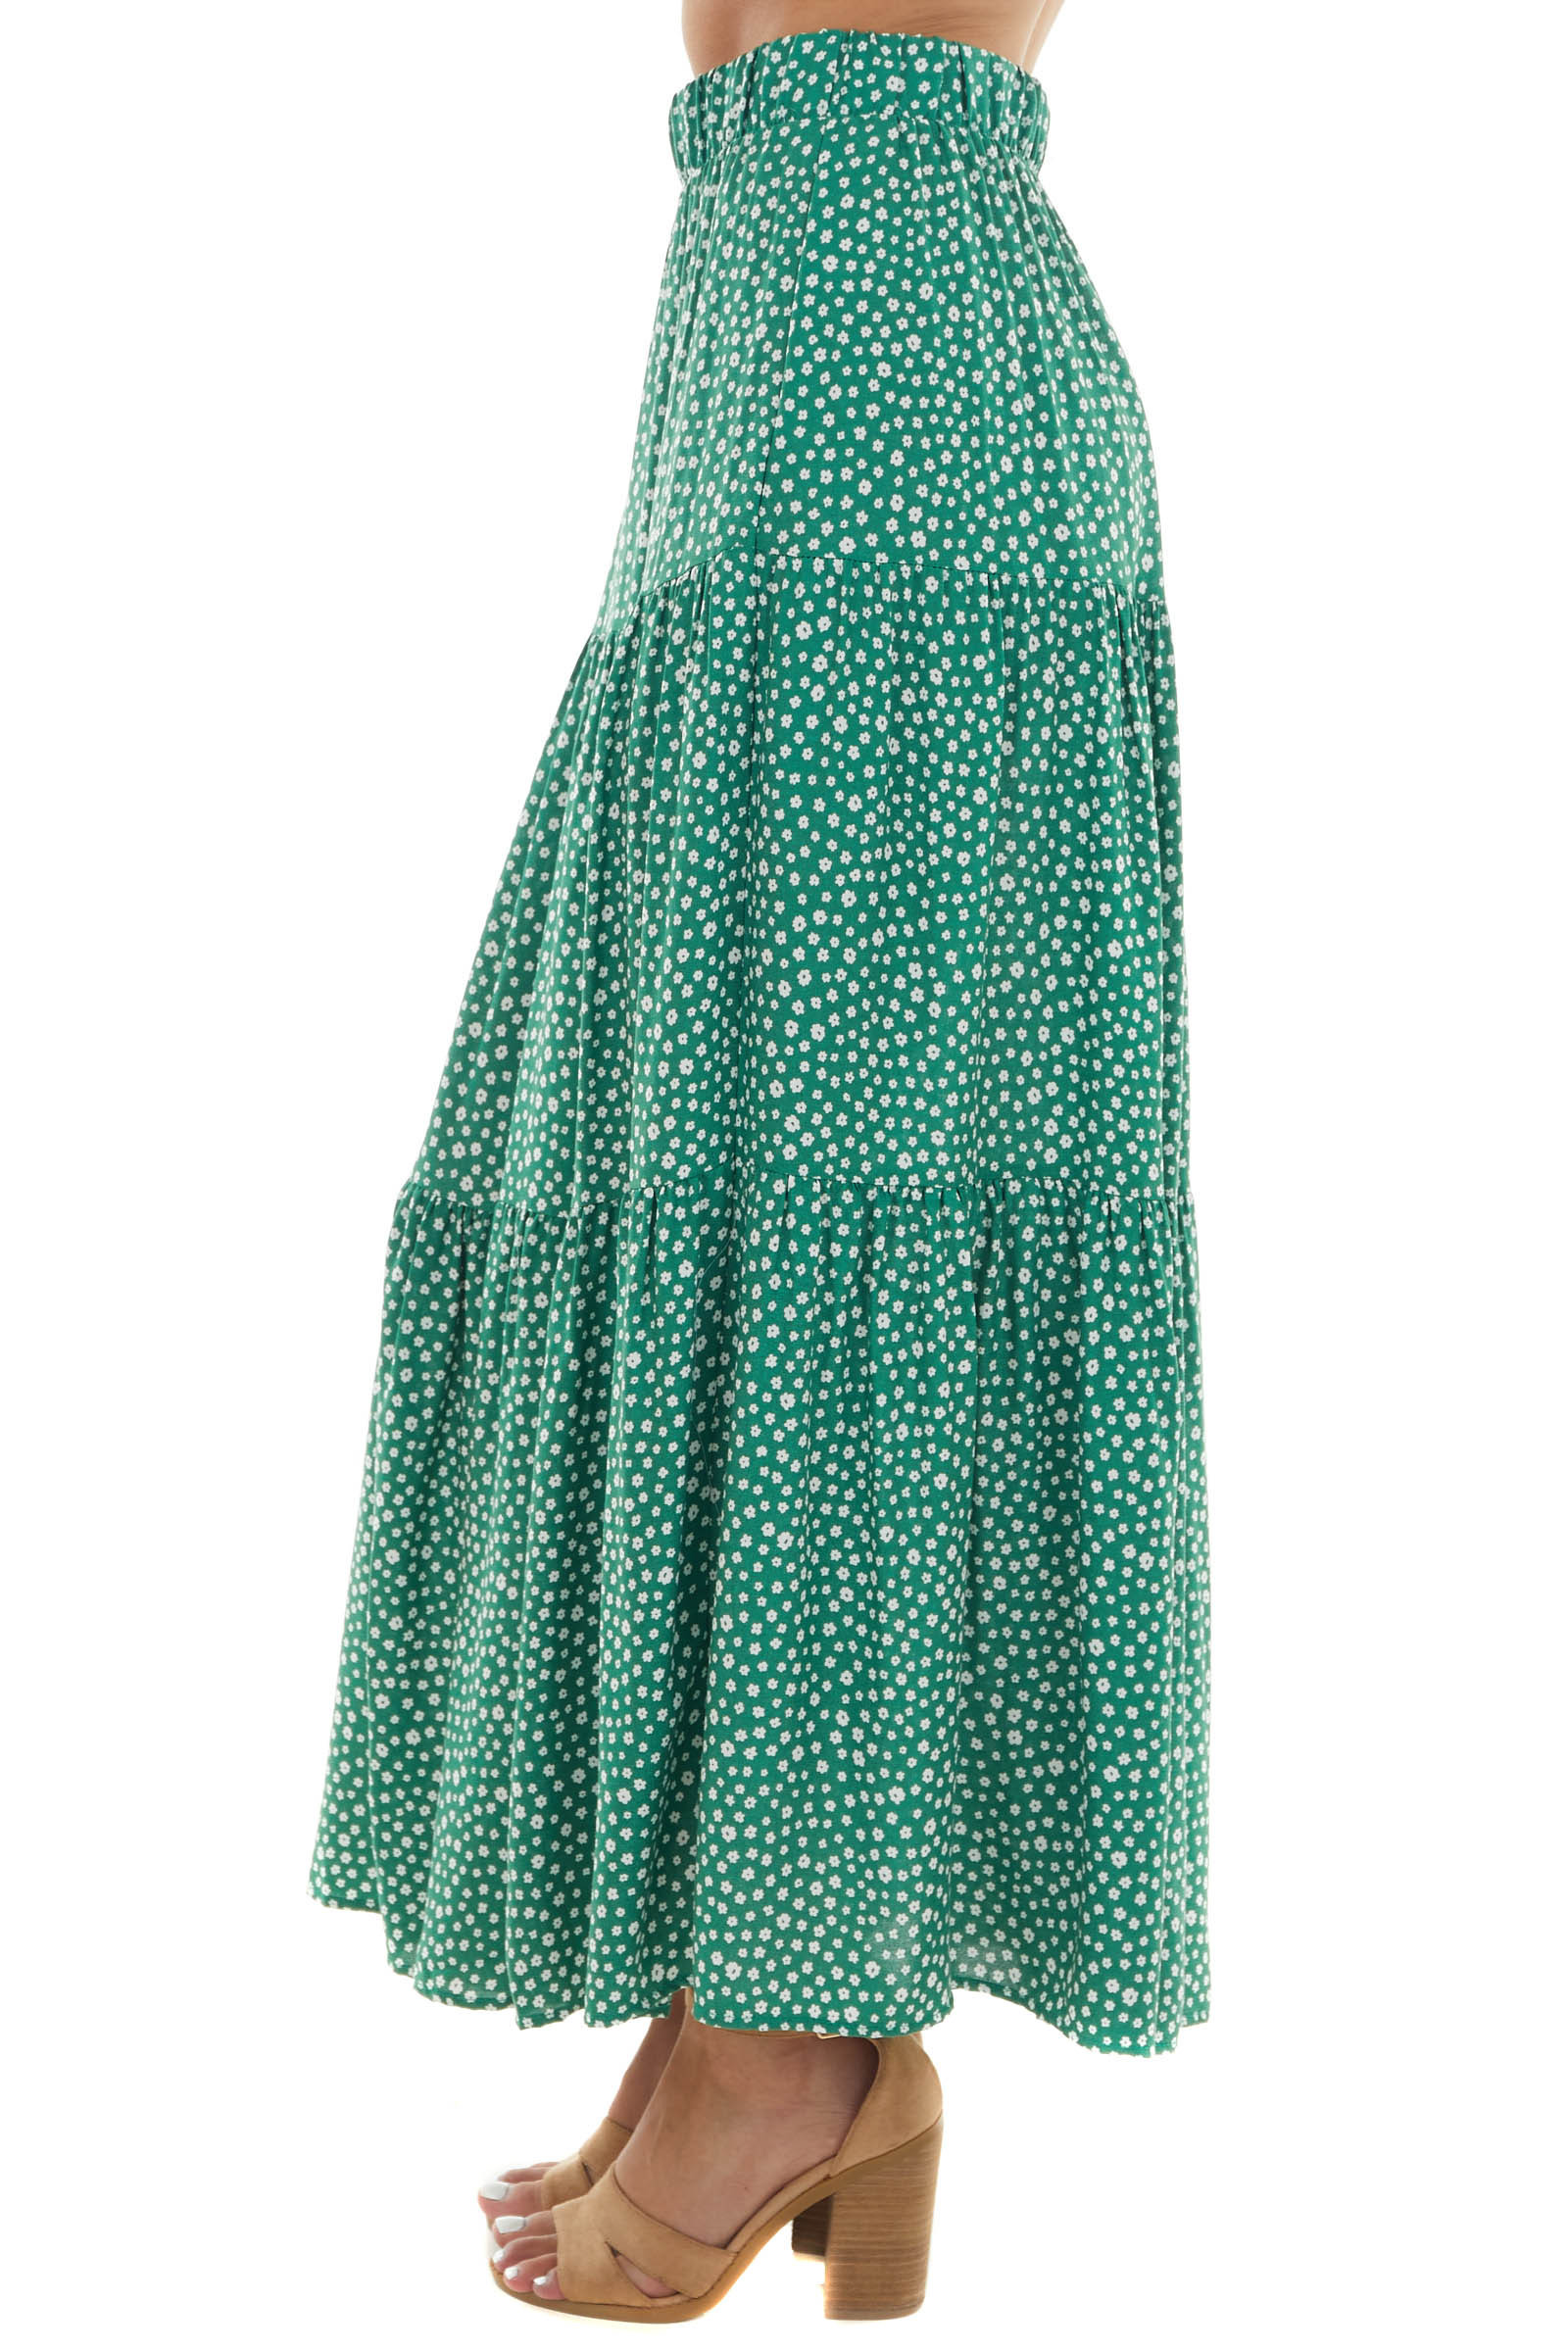 Jade Green Ditsy Floral Tiered Maxi Skirt